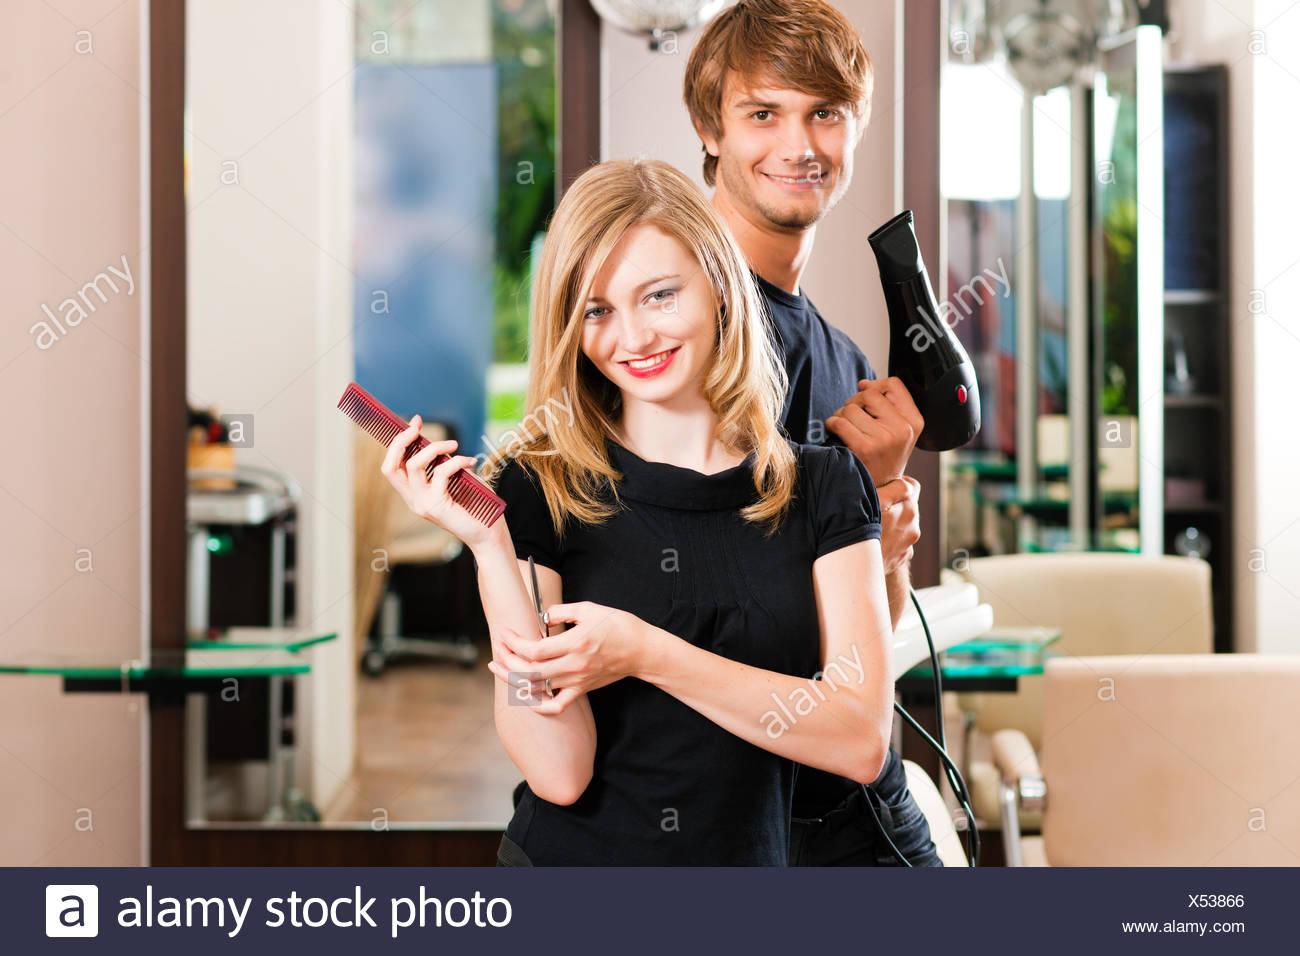 barber and hairdresser at the salon - Stock Image